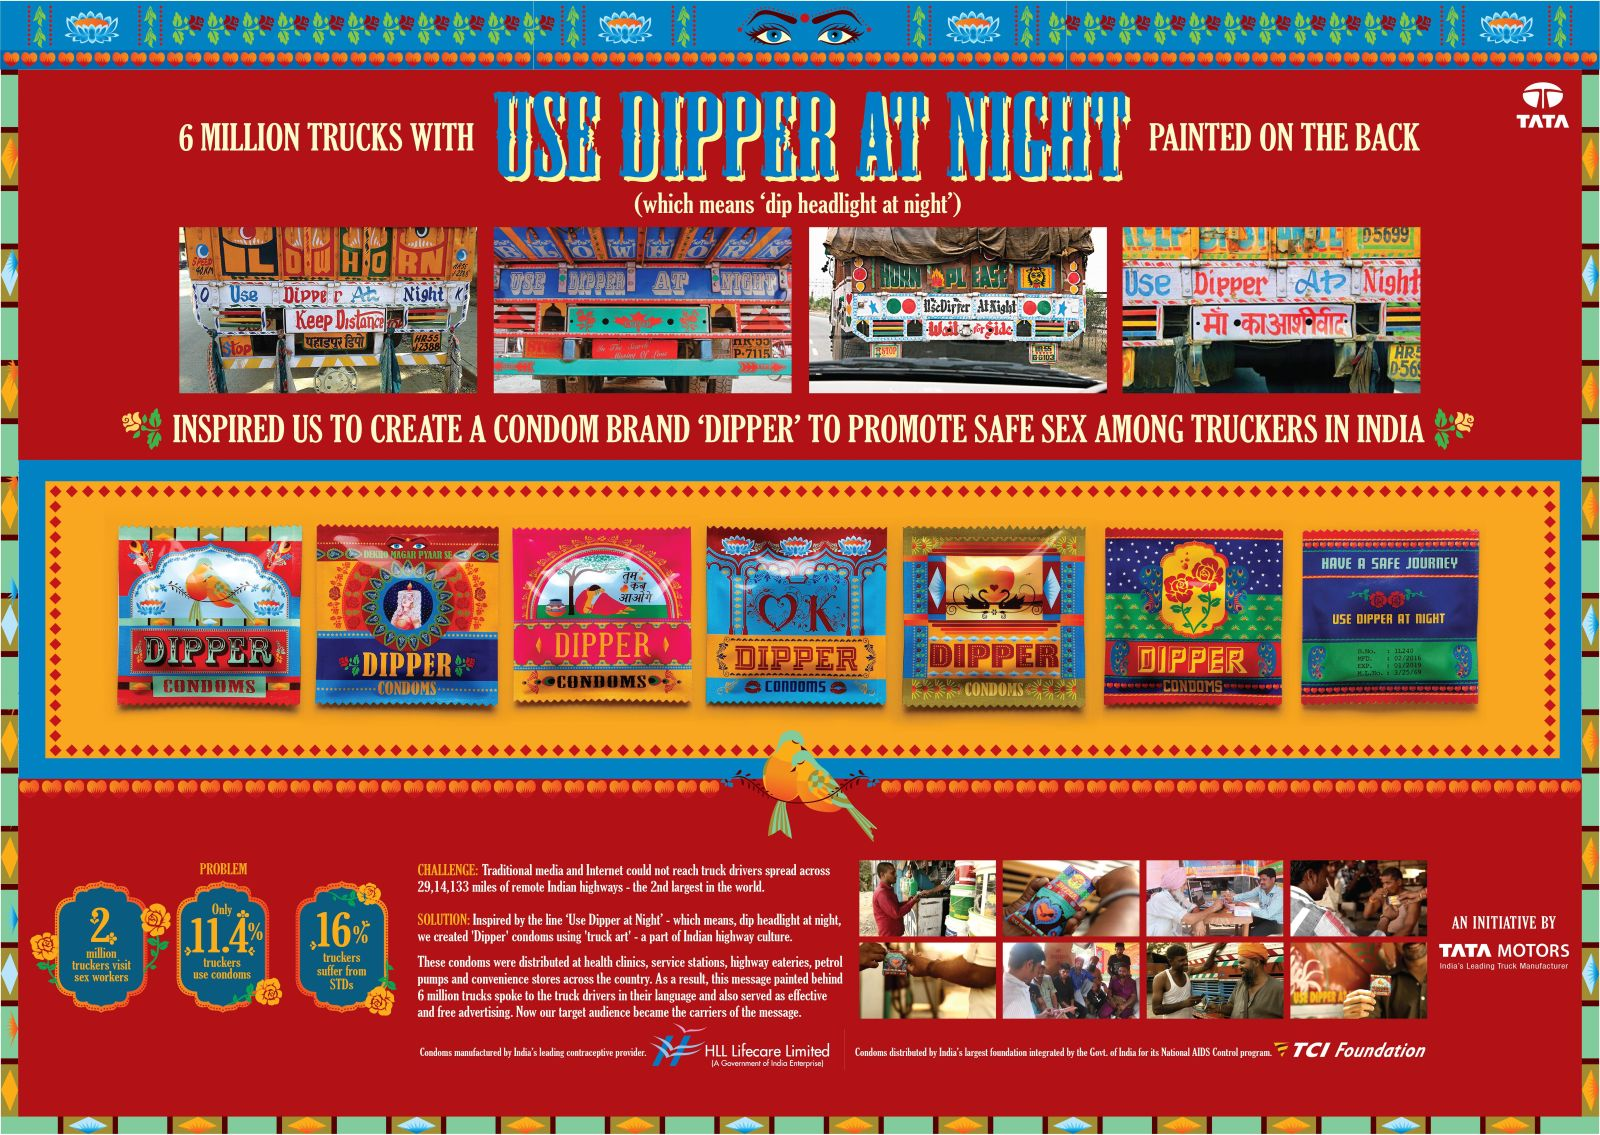 Tata Motors 'Use Dipper At Night' campaign promotes safe sex among truck drivers (4)